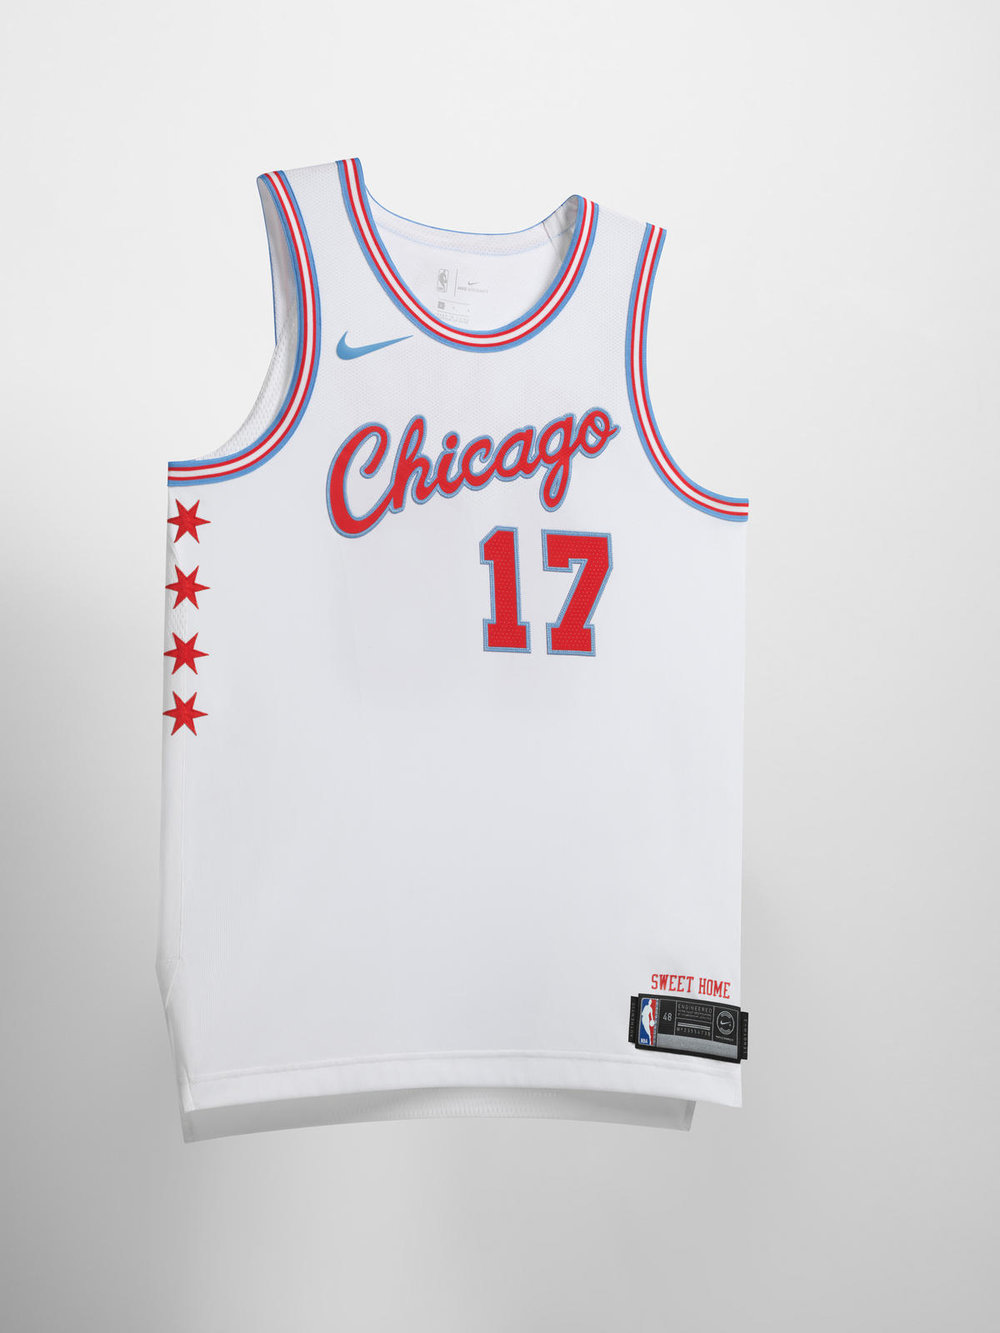 Nike_NBA_City_Edition_Uniform_Chicago_Bulls_0115_native_1600.jpeg